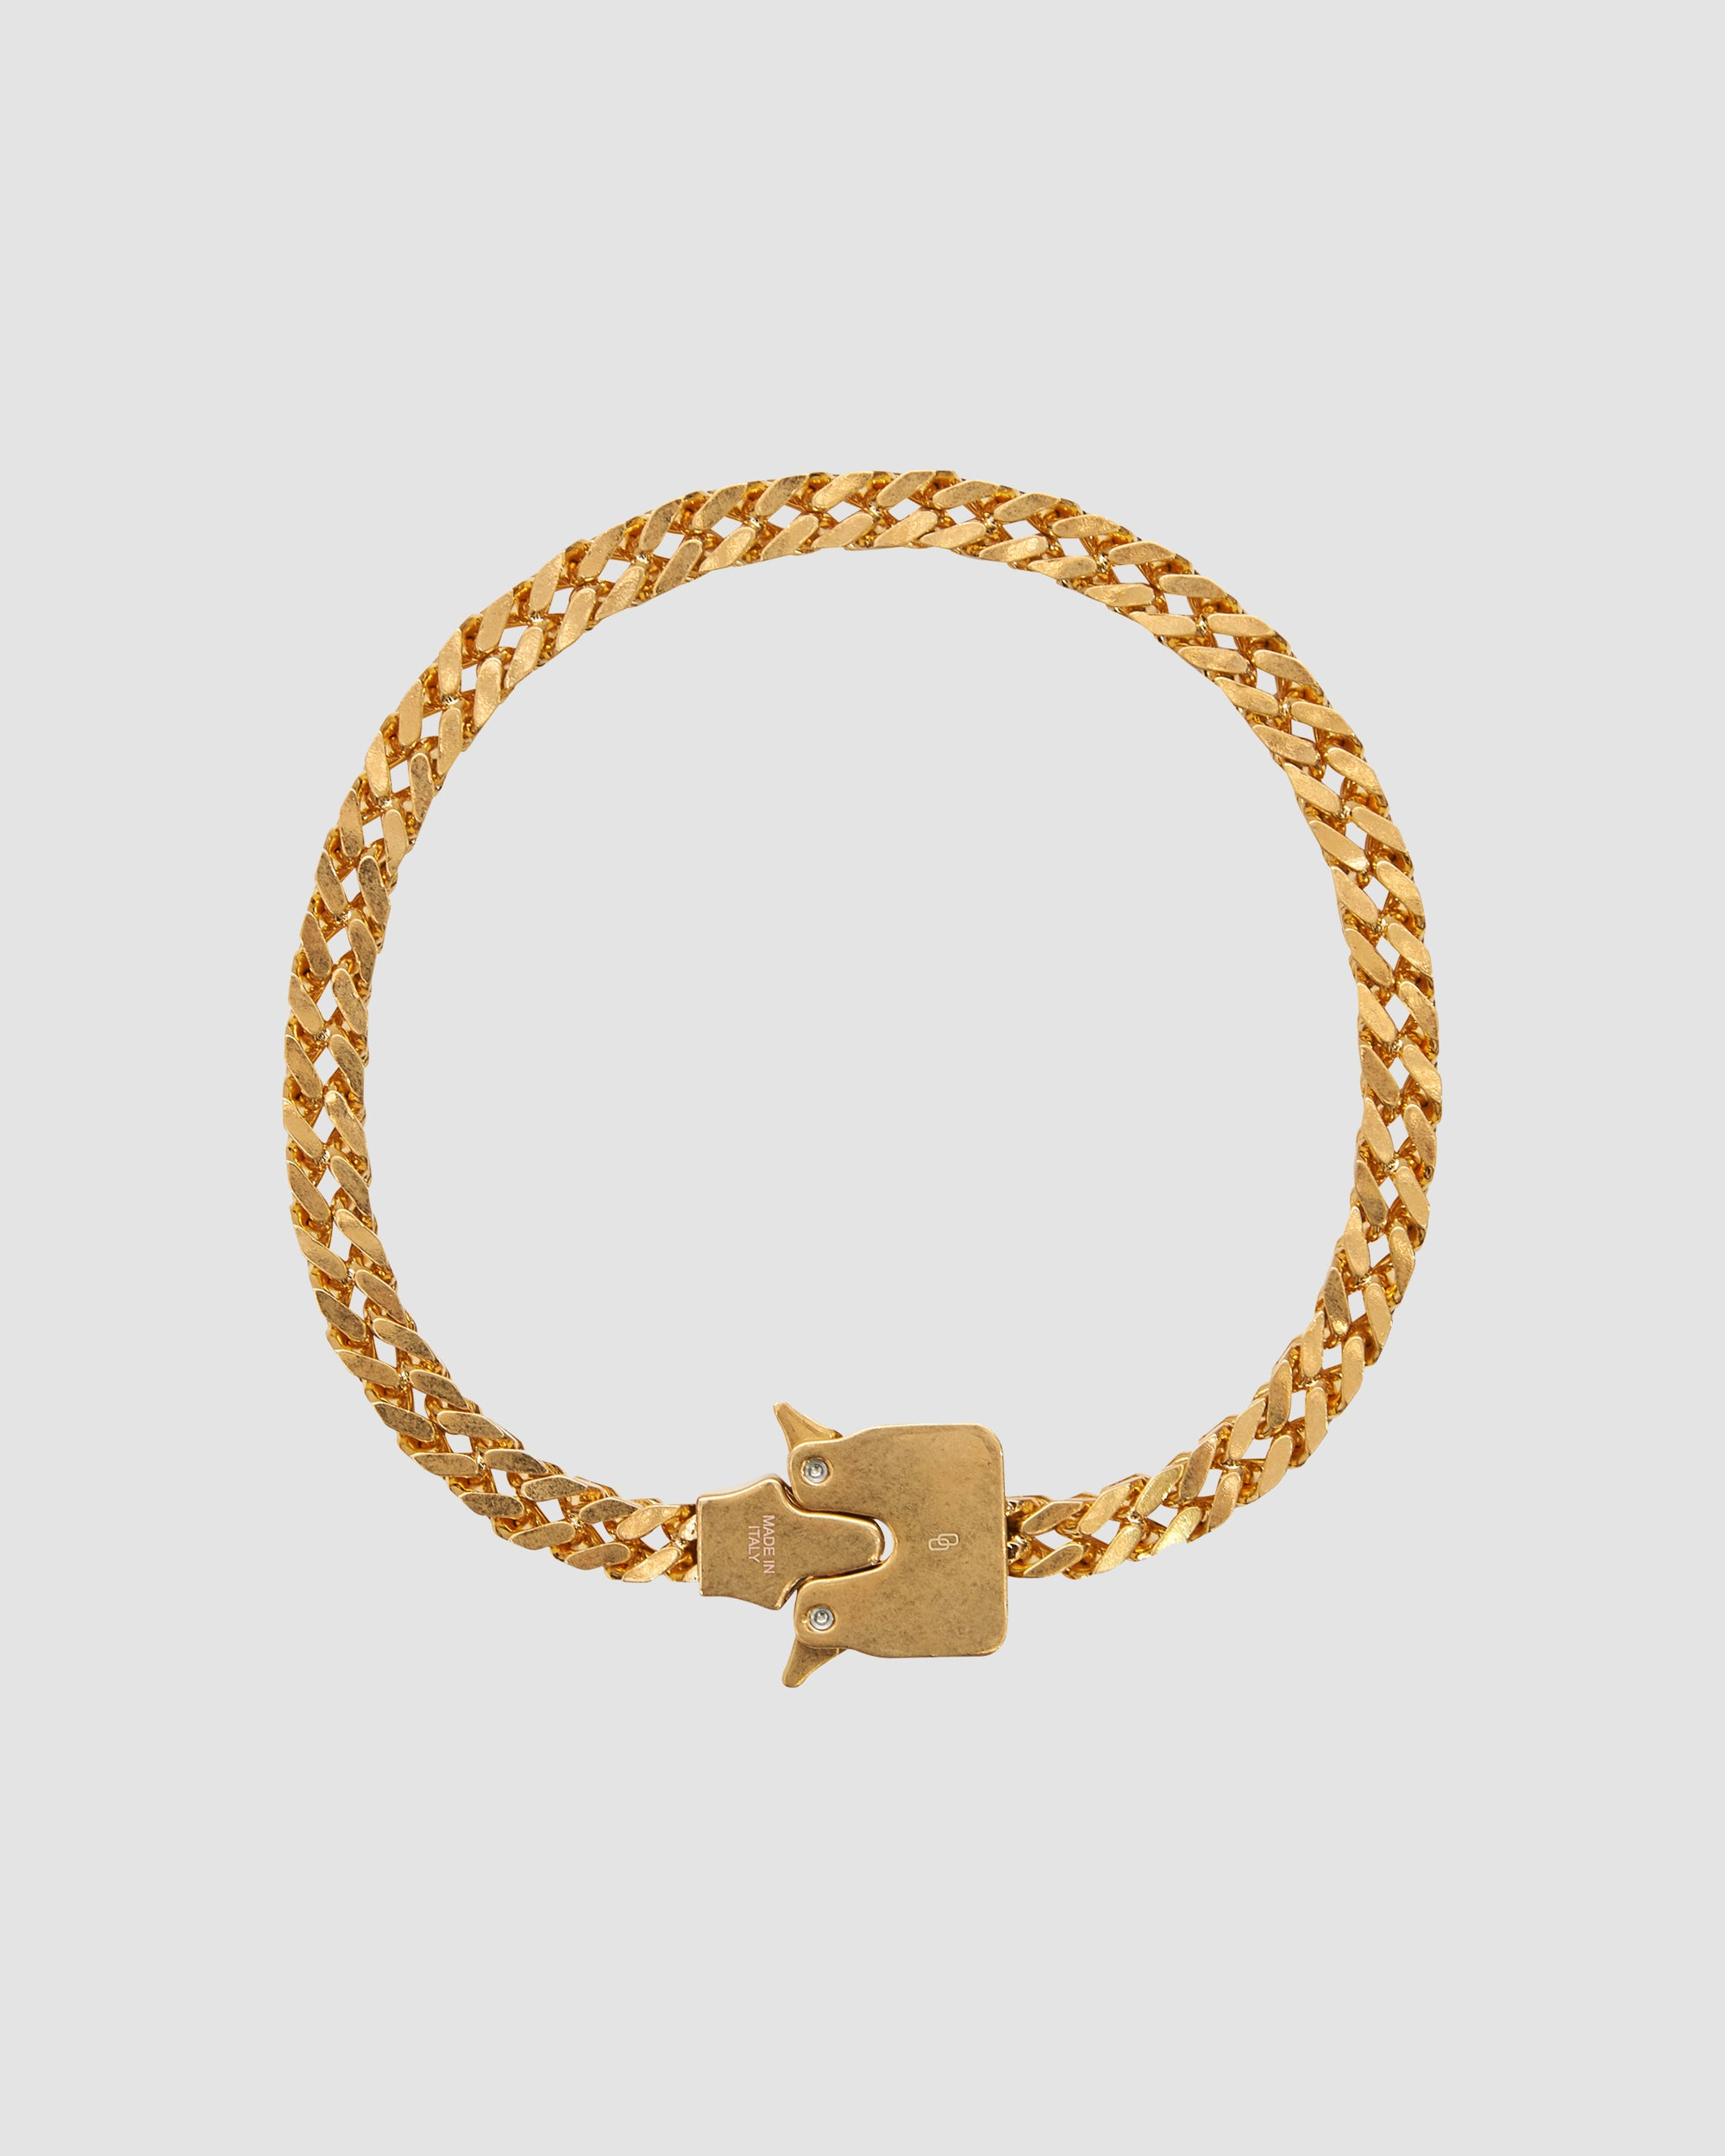 1017 ALYX 9SM | CUBIX MINI NECKLACE | Jewellery | Accessories, GOLD, Google Shopping, Jewellery, jewelry, Man, S20, S20 Drop II, UNISEX, Woman